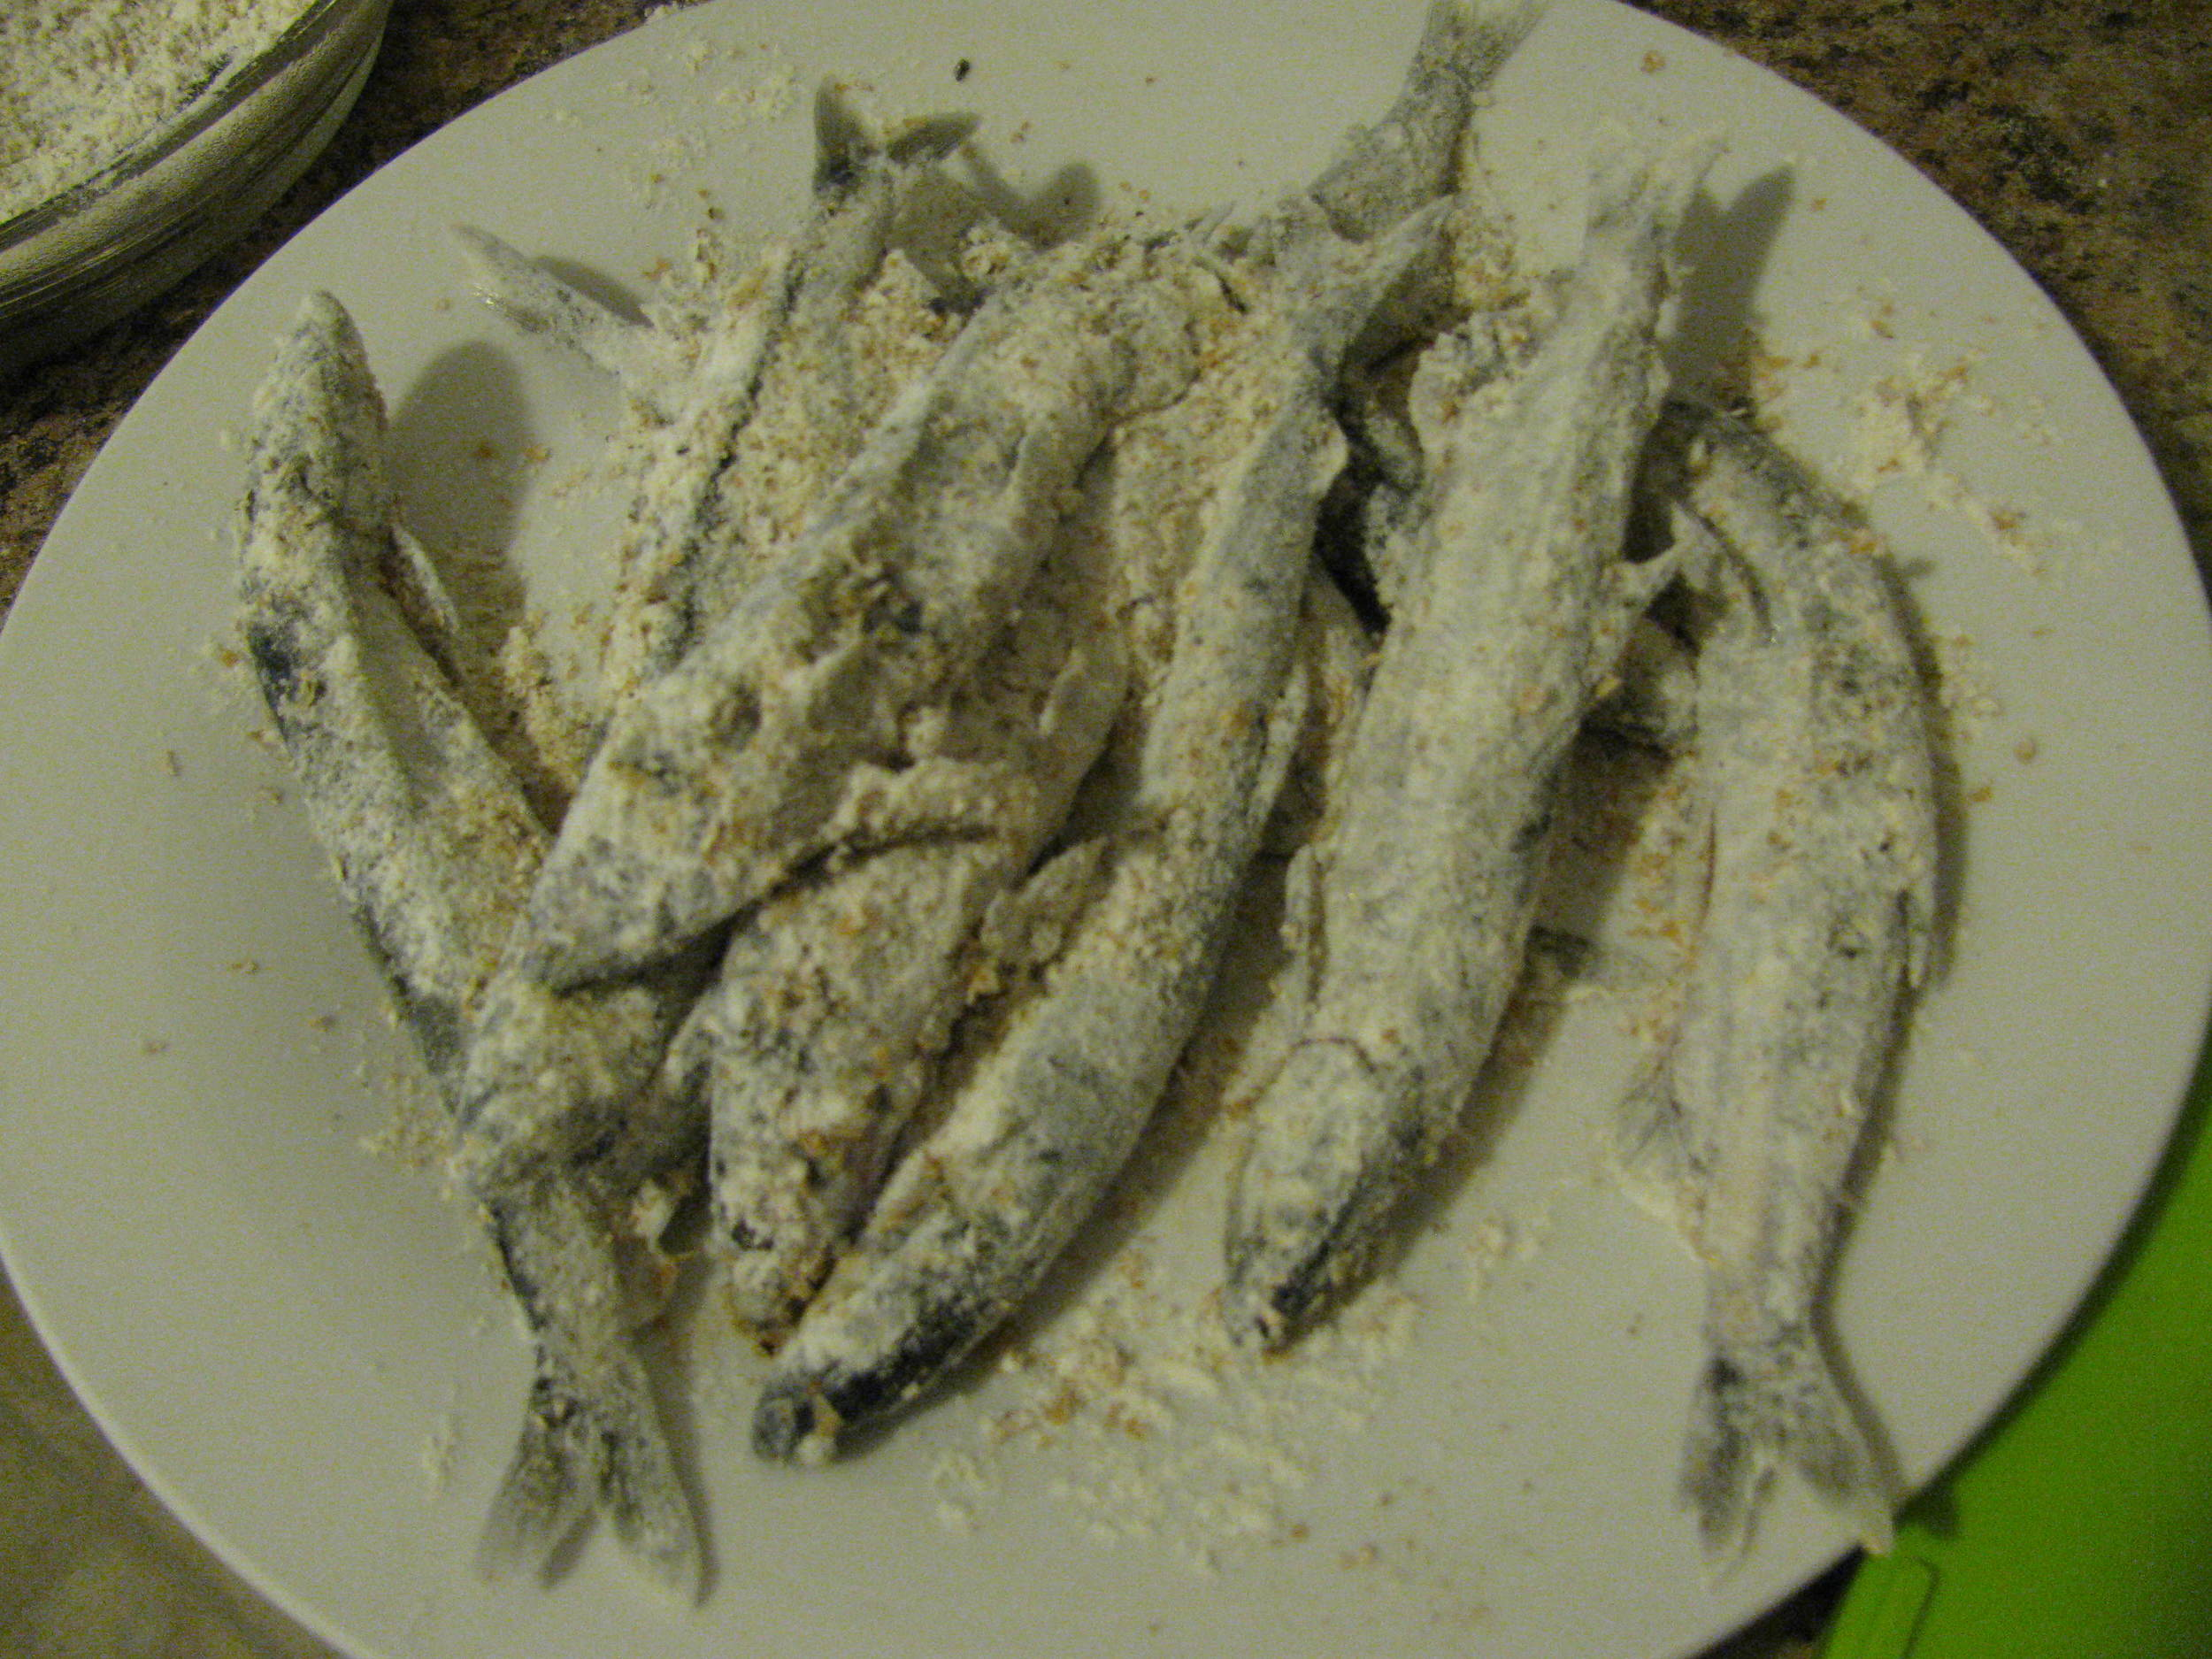 Preparing the capelin for frying